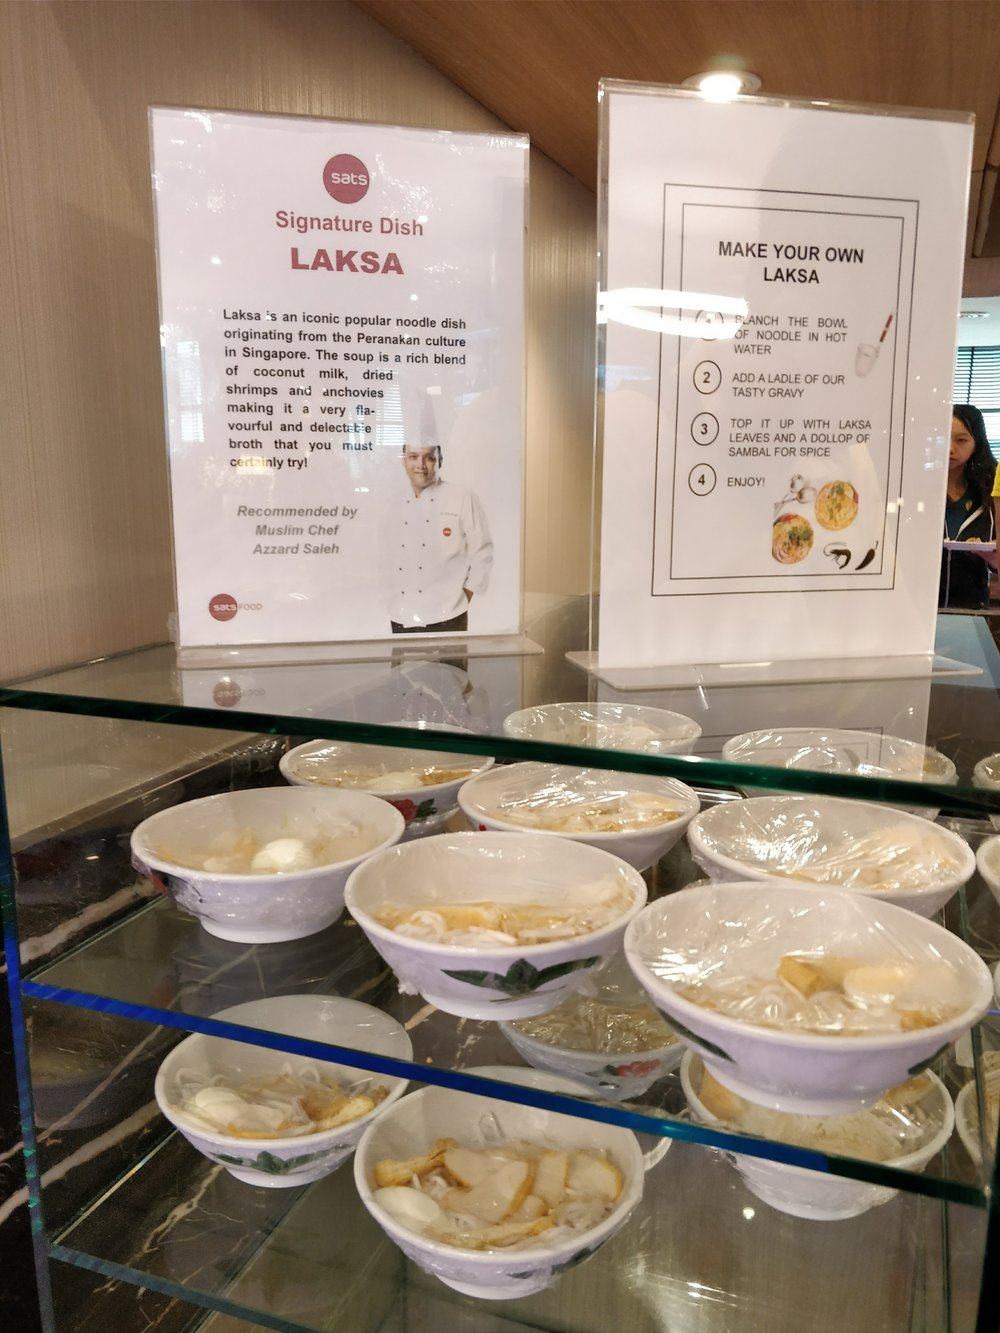 Make your own laksa